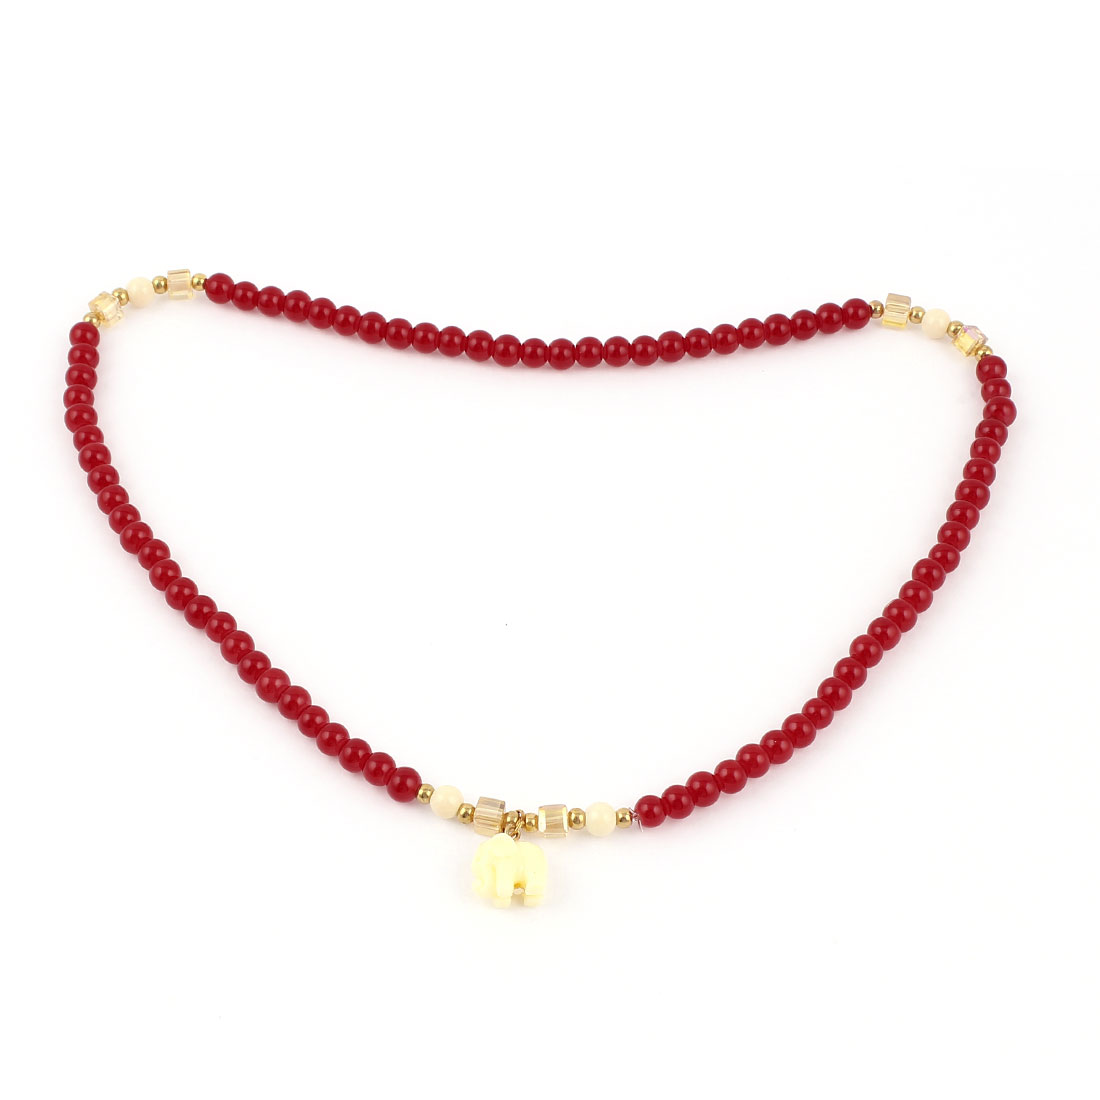 Lady Red Plastic Beads Chain Elephant Pendant Accent Elastic Necklace Ring Bracelet